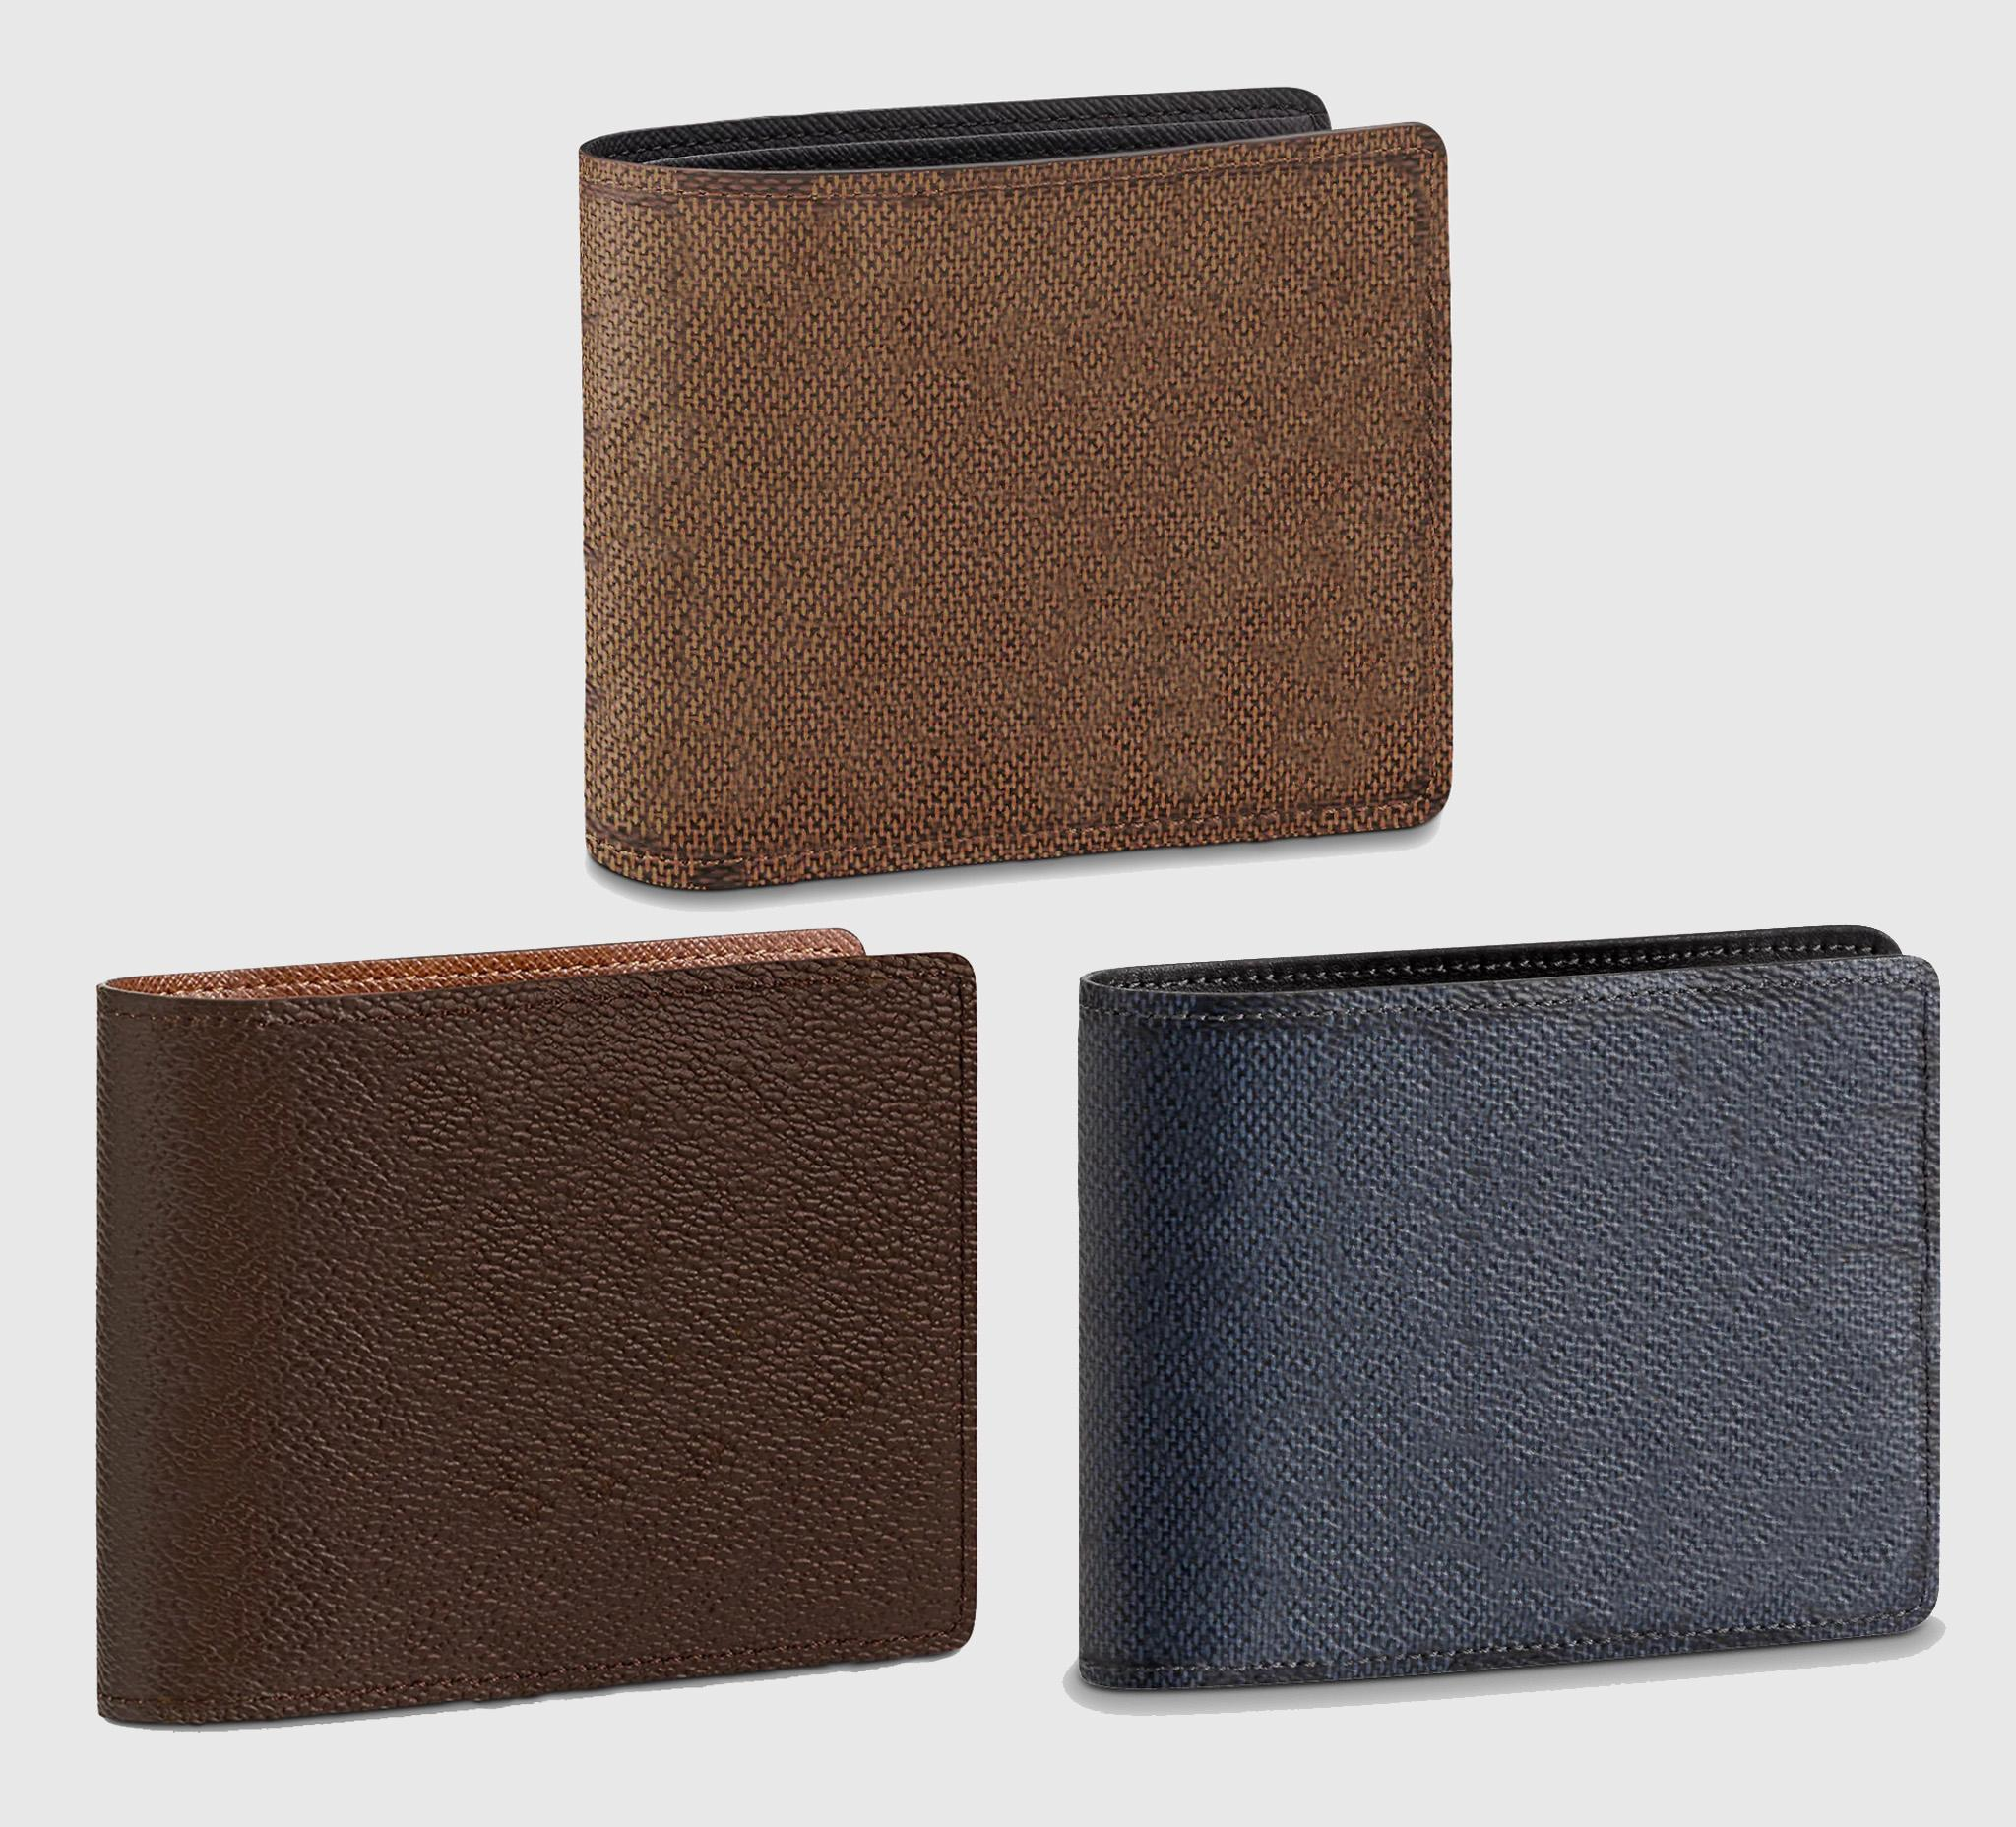 Designer wallet Luxury purse Fashion moneybag High quality womens coin purses credit card case Europe and America classic style multiple pocket design